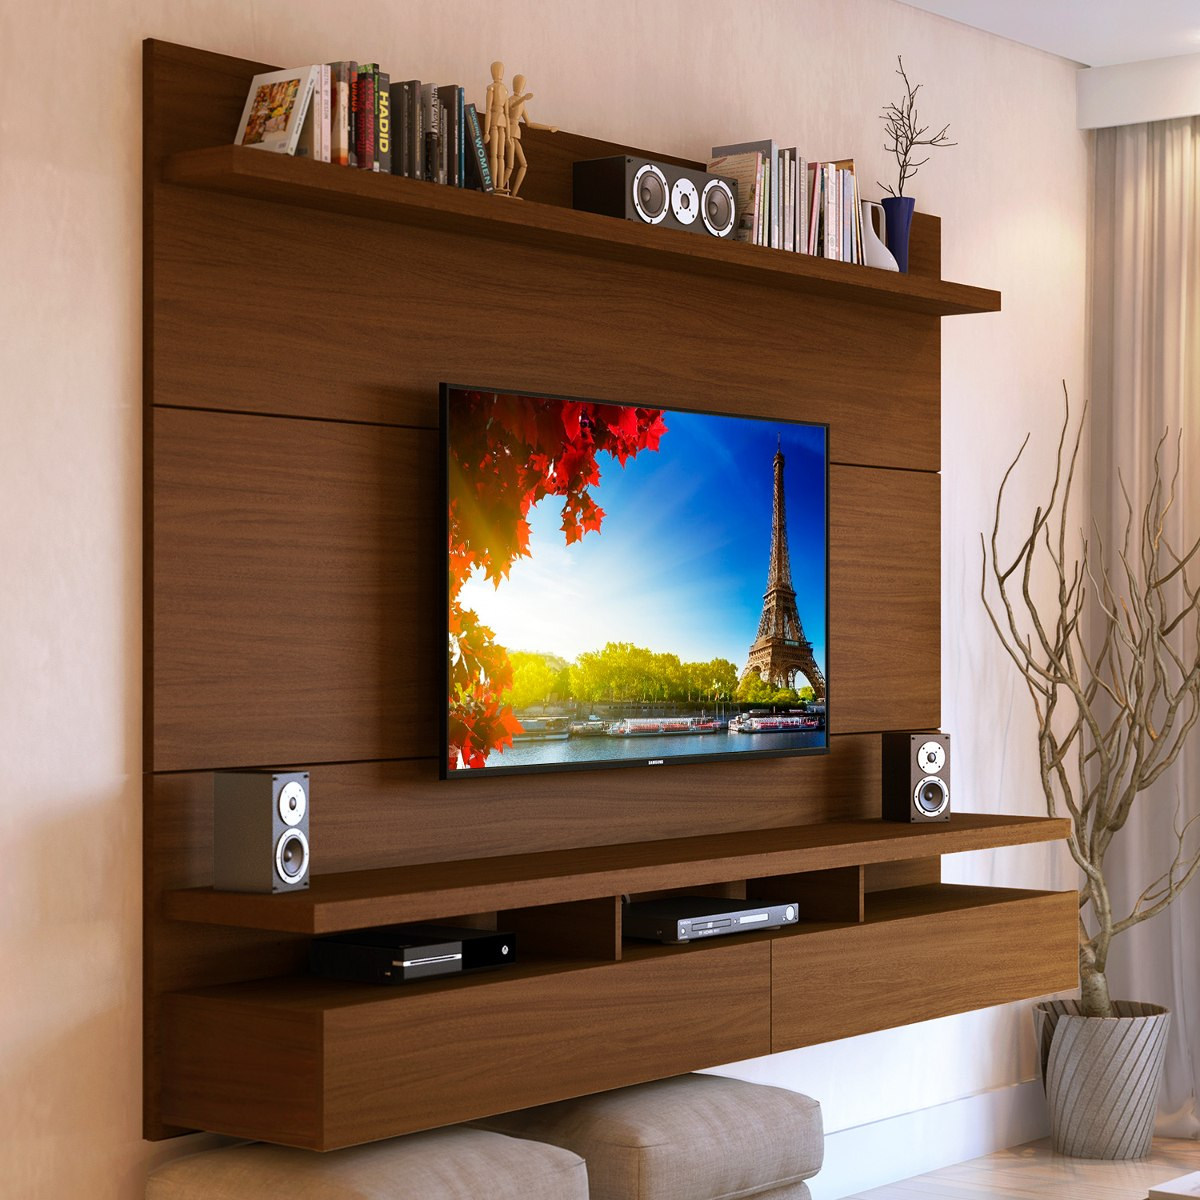 Mueble tv pared fabulous with mueble tv pared great ideas para muebles de tv with mueble tv - Mueble tv pared ...